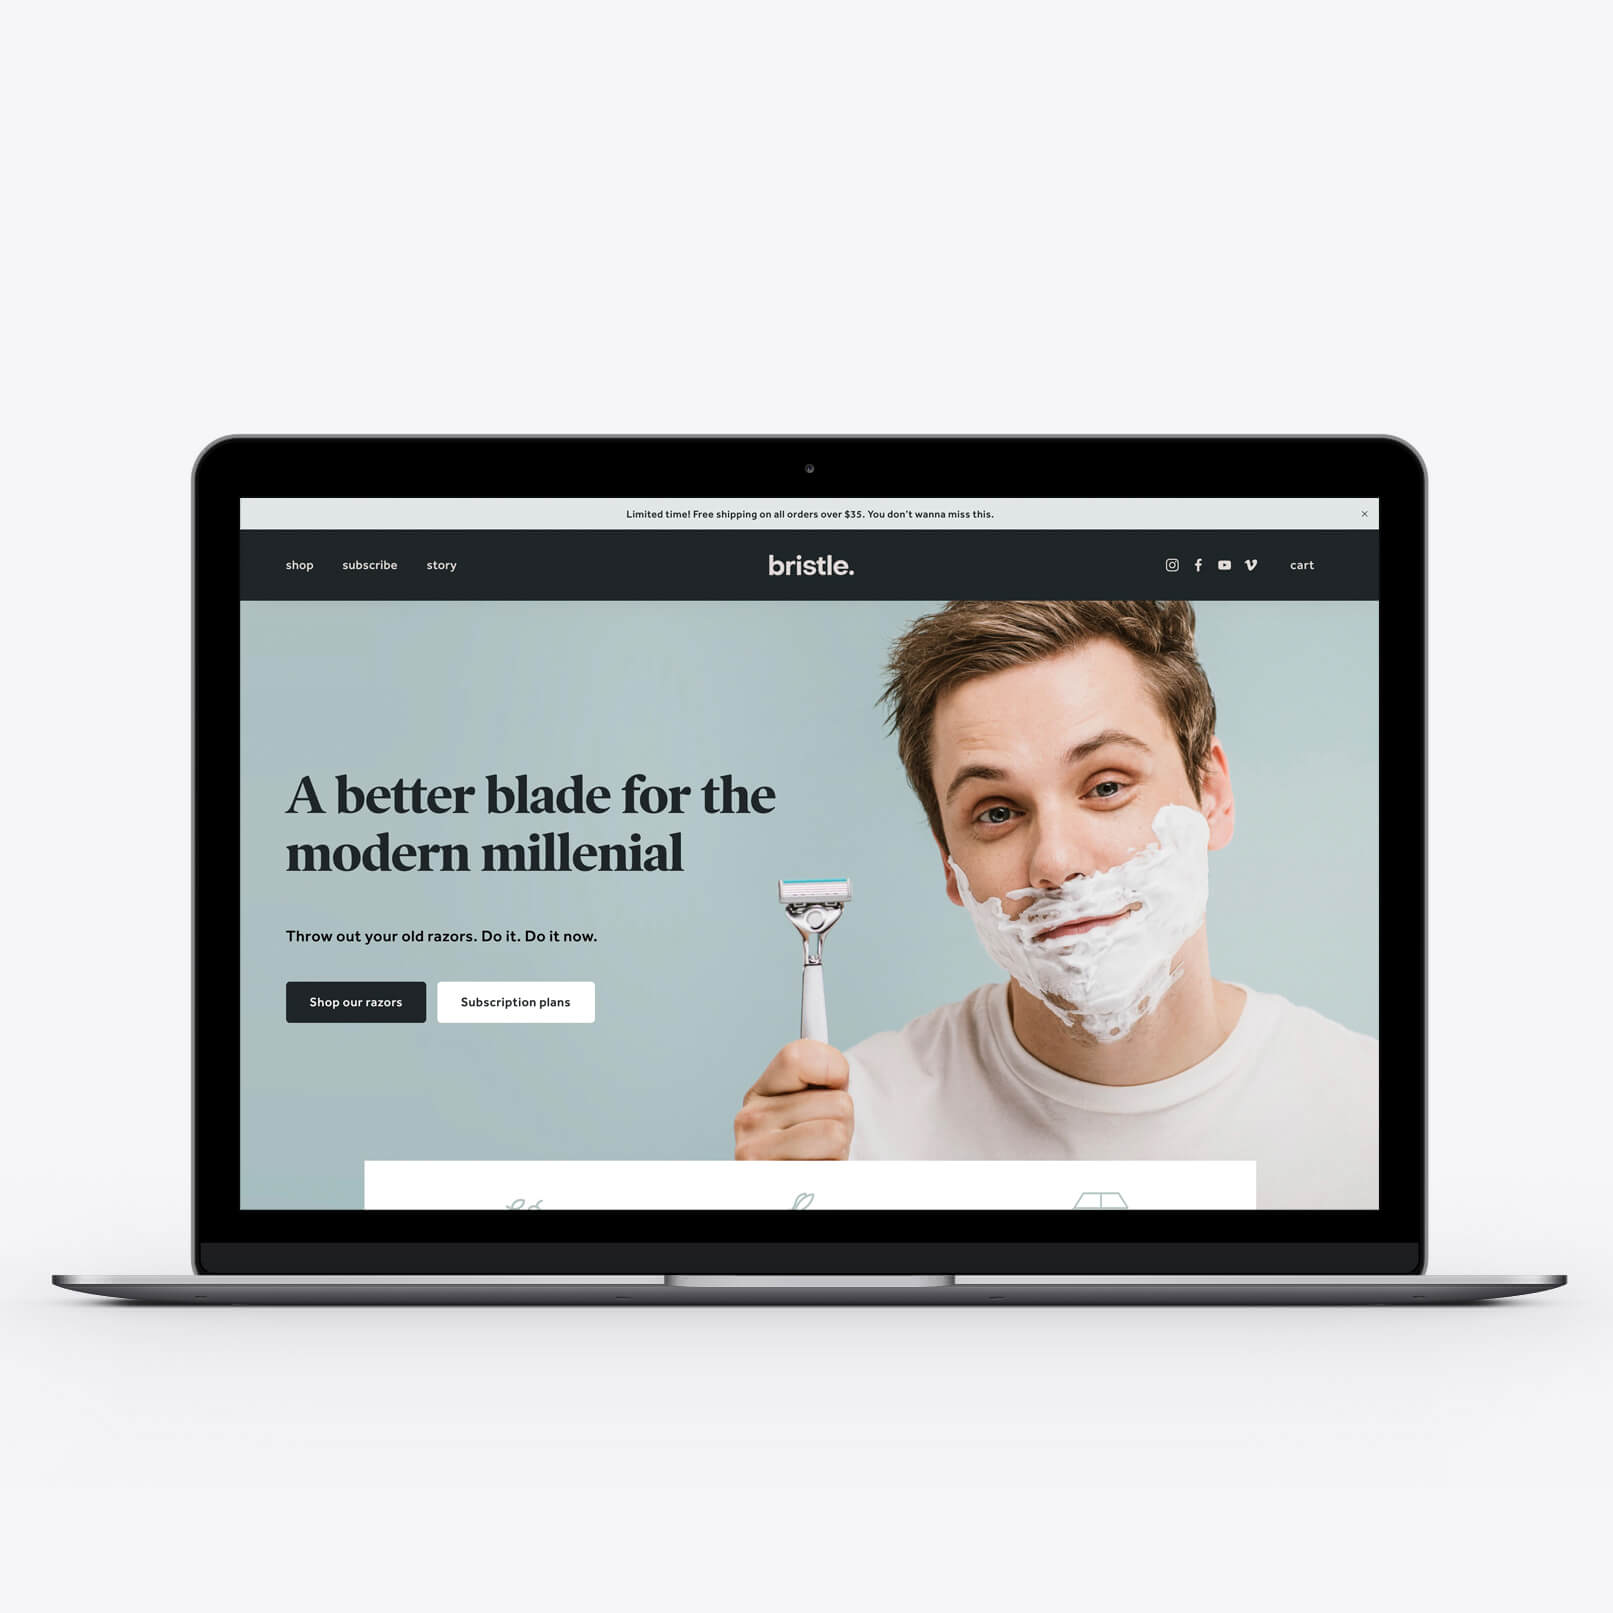 Online Store - Bristle's positioning as a millennial brand guided our design process with their clean, simple, and straightforward website. Sophisticated typefaces and a calming color palette embodied each of their razors' benefits—smooth, soft, and good-looking.